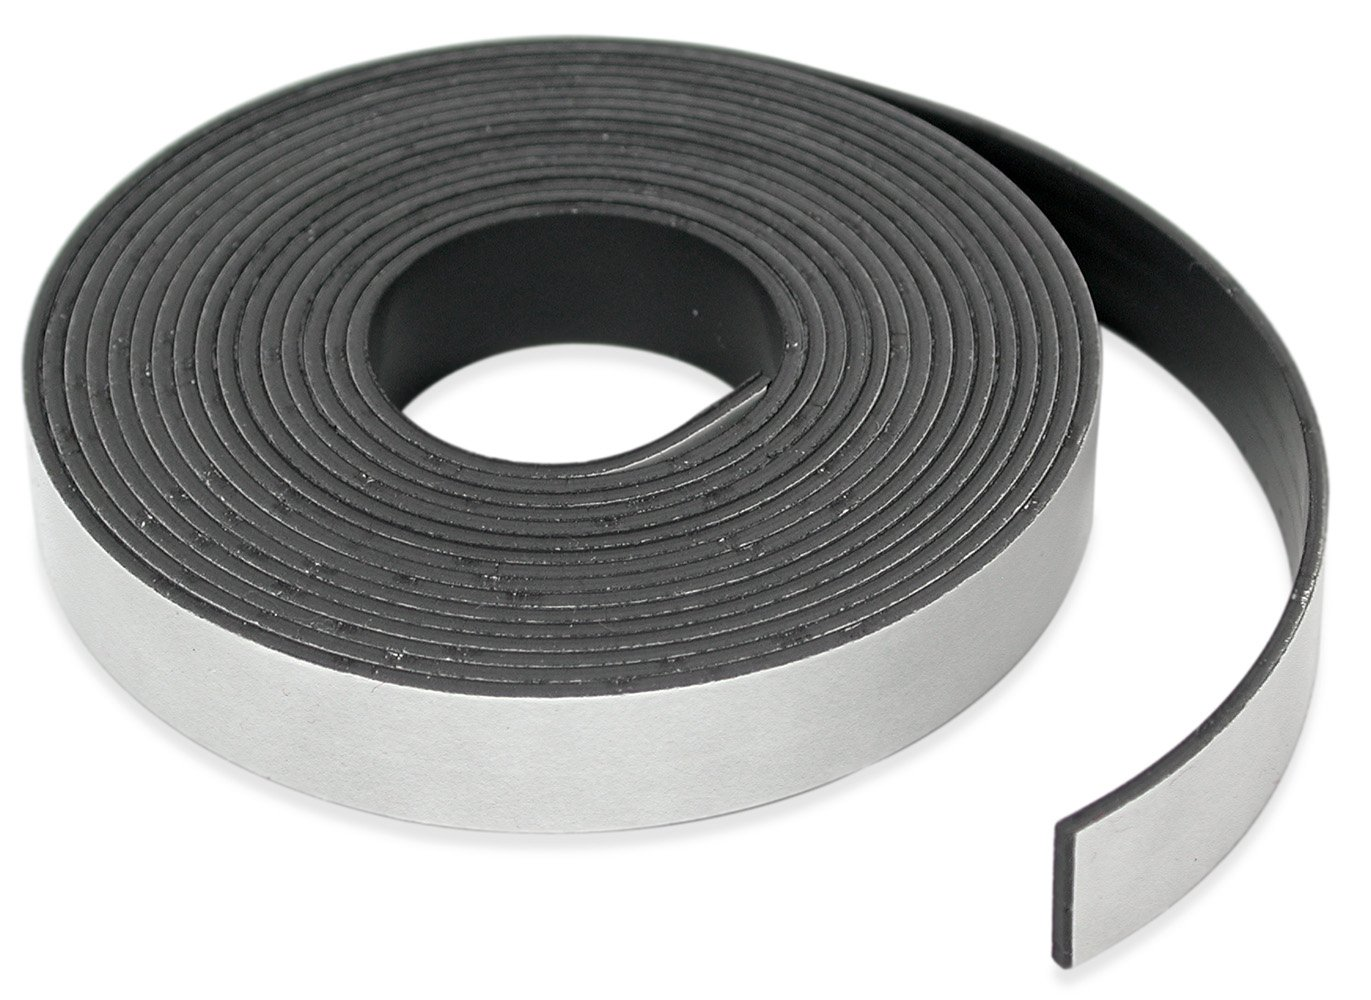 "Master Magnetics - B005HYDC68 Roll-N-Cut Flexible Magnetic Tape Refill - 1/16"" Thick x 1/2"" Wide x 15 feet. (1 roll), 07518"